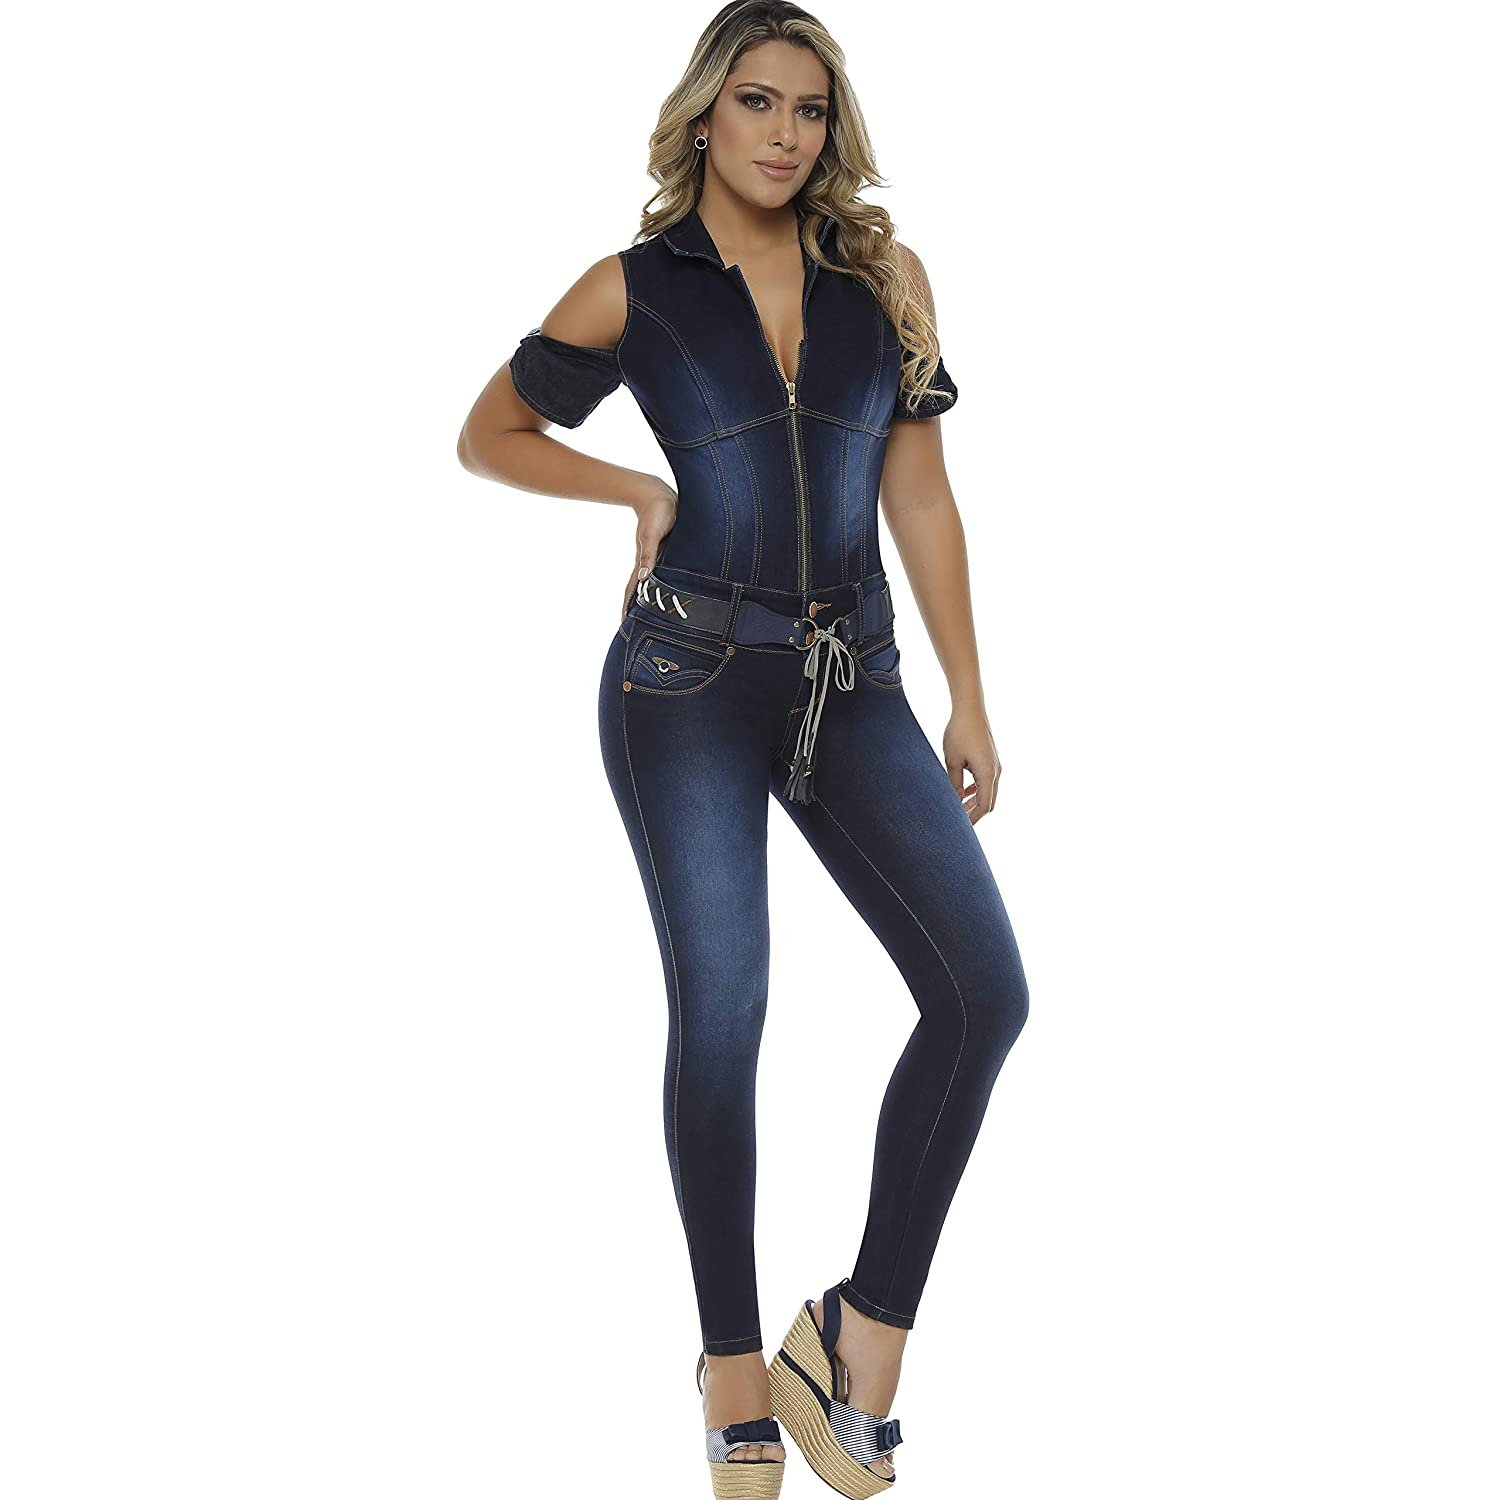 3f3b7d816e81b BUTT LIFTING SKINNY JUMPSUITS FOR WOMEN: Heart shape seam on top of the  rear lifts and shapes the buttocks, adding volume naturally.